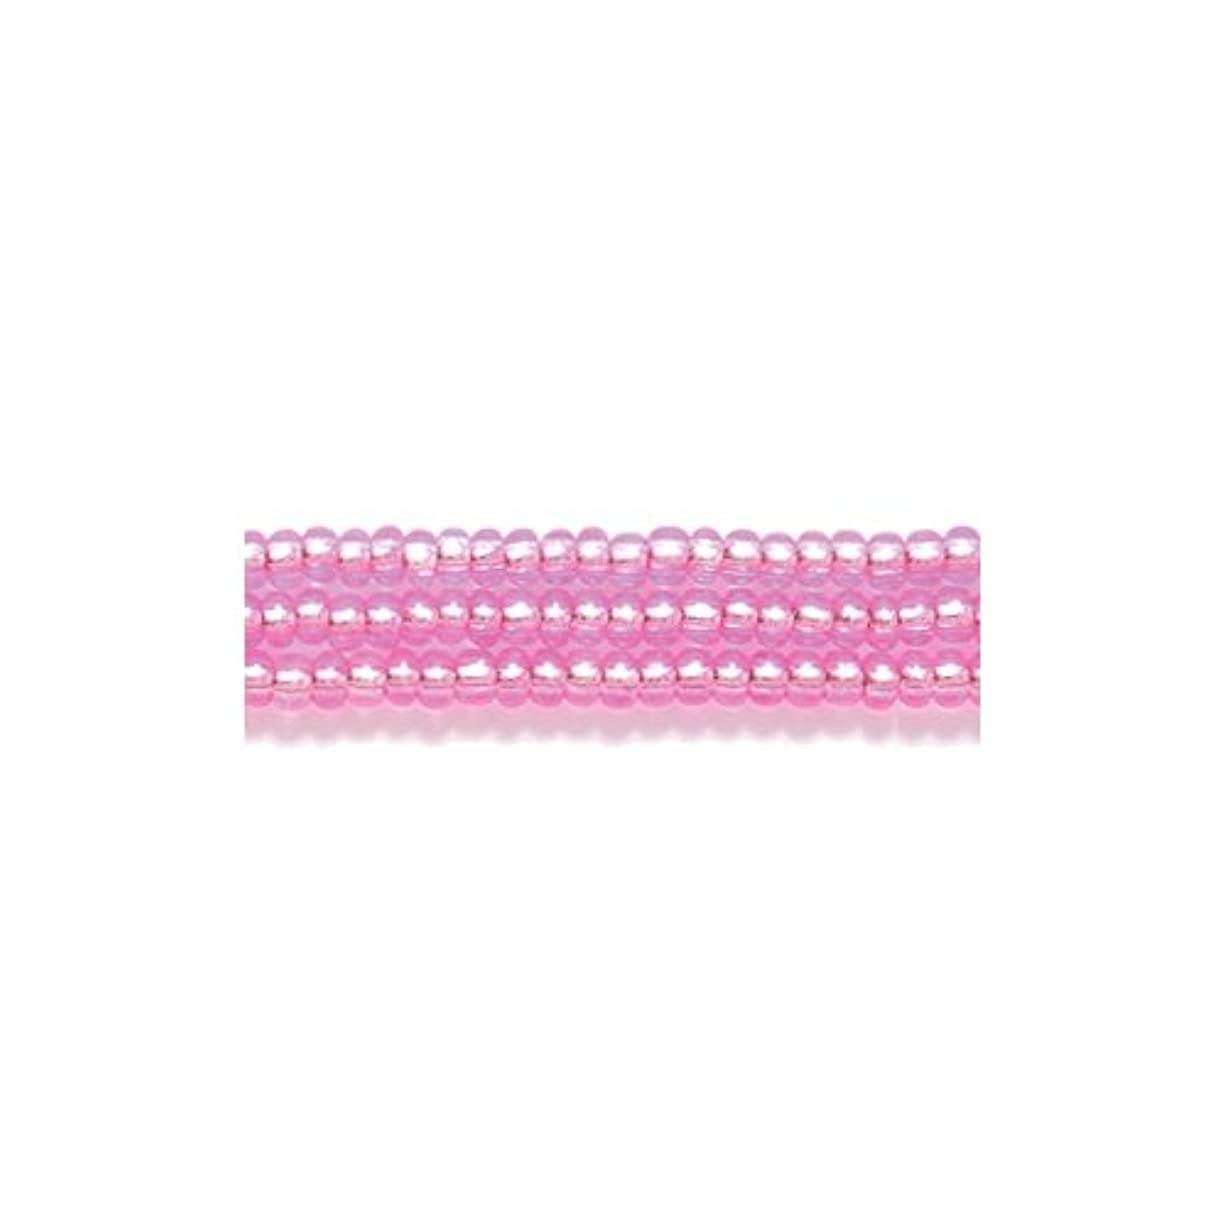 Preciosa Ornela Czech Seed Bead, Silver Lined Dyed Dark Pink Round Hole, Size 11/0